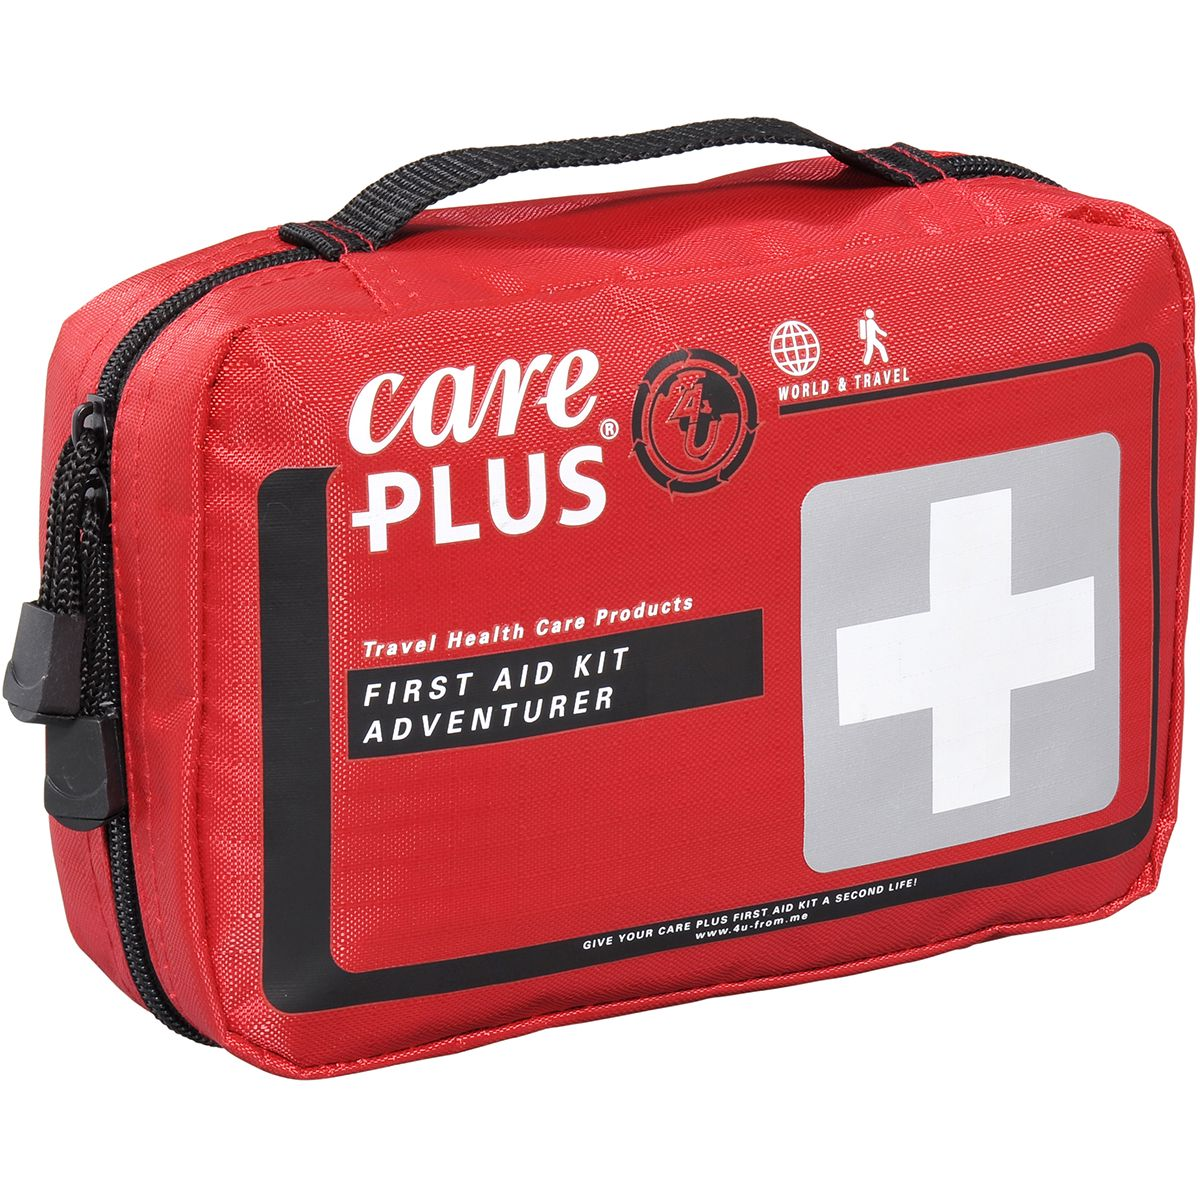 Image of Care Plus First Aid Kit Adventurer (Weiß)